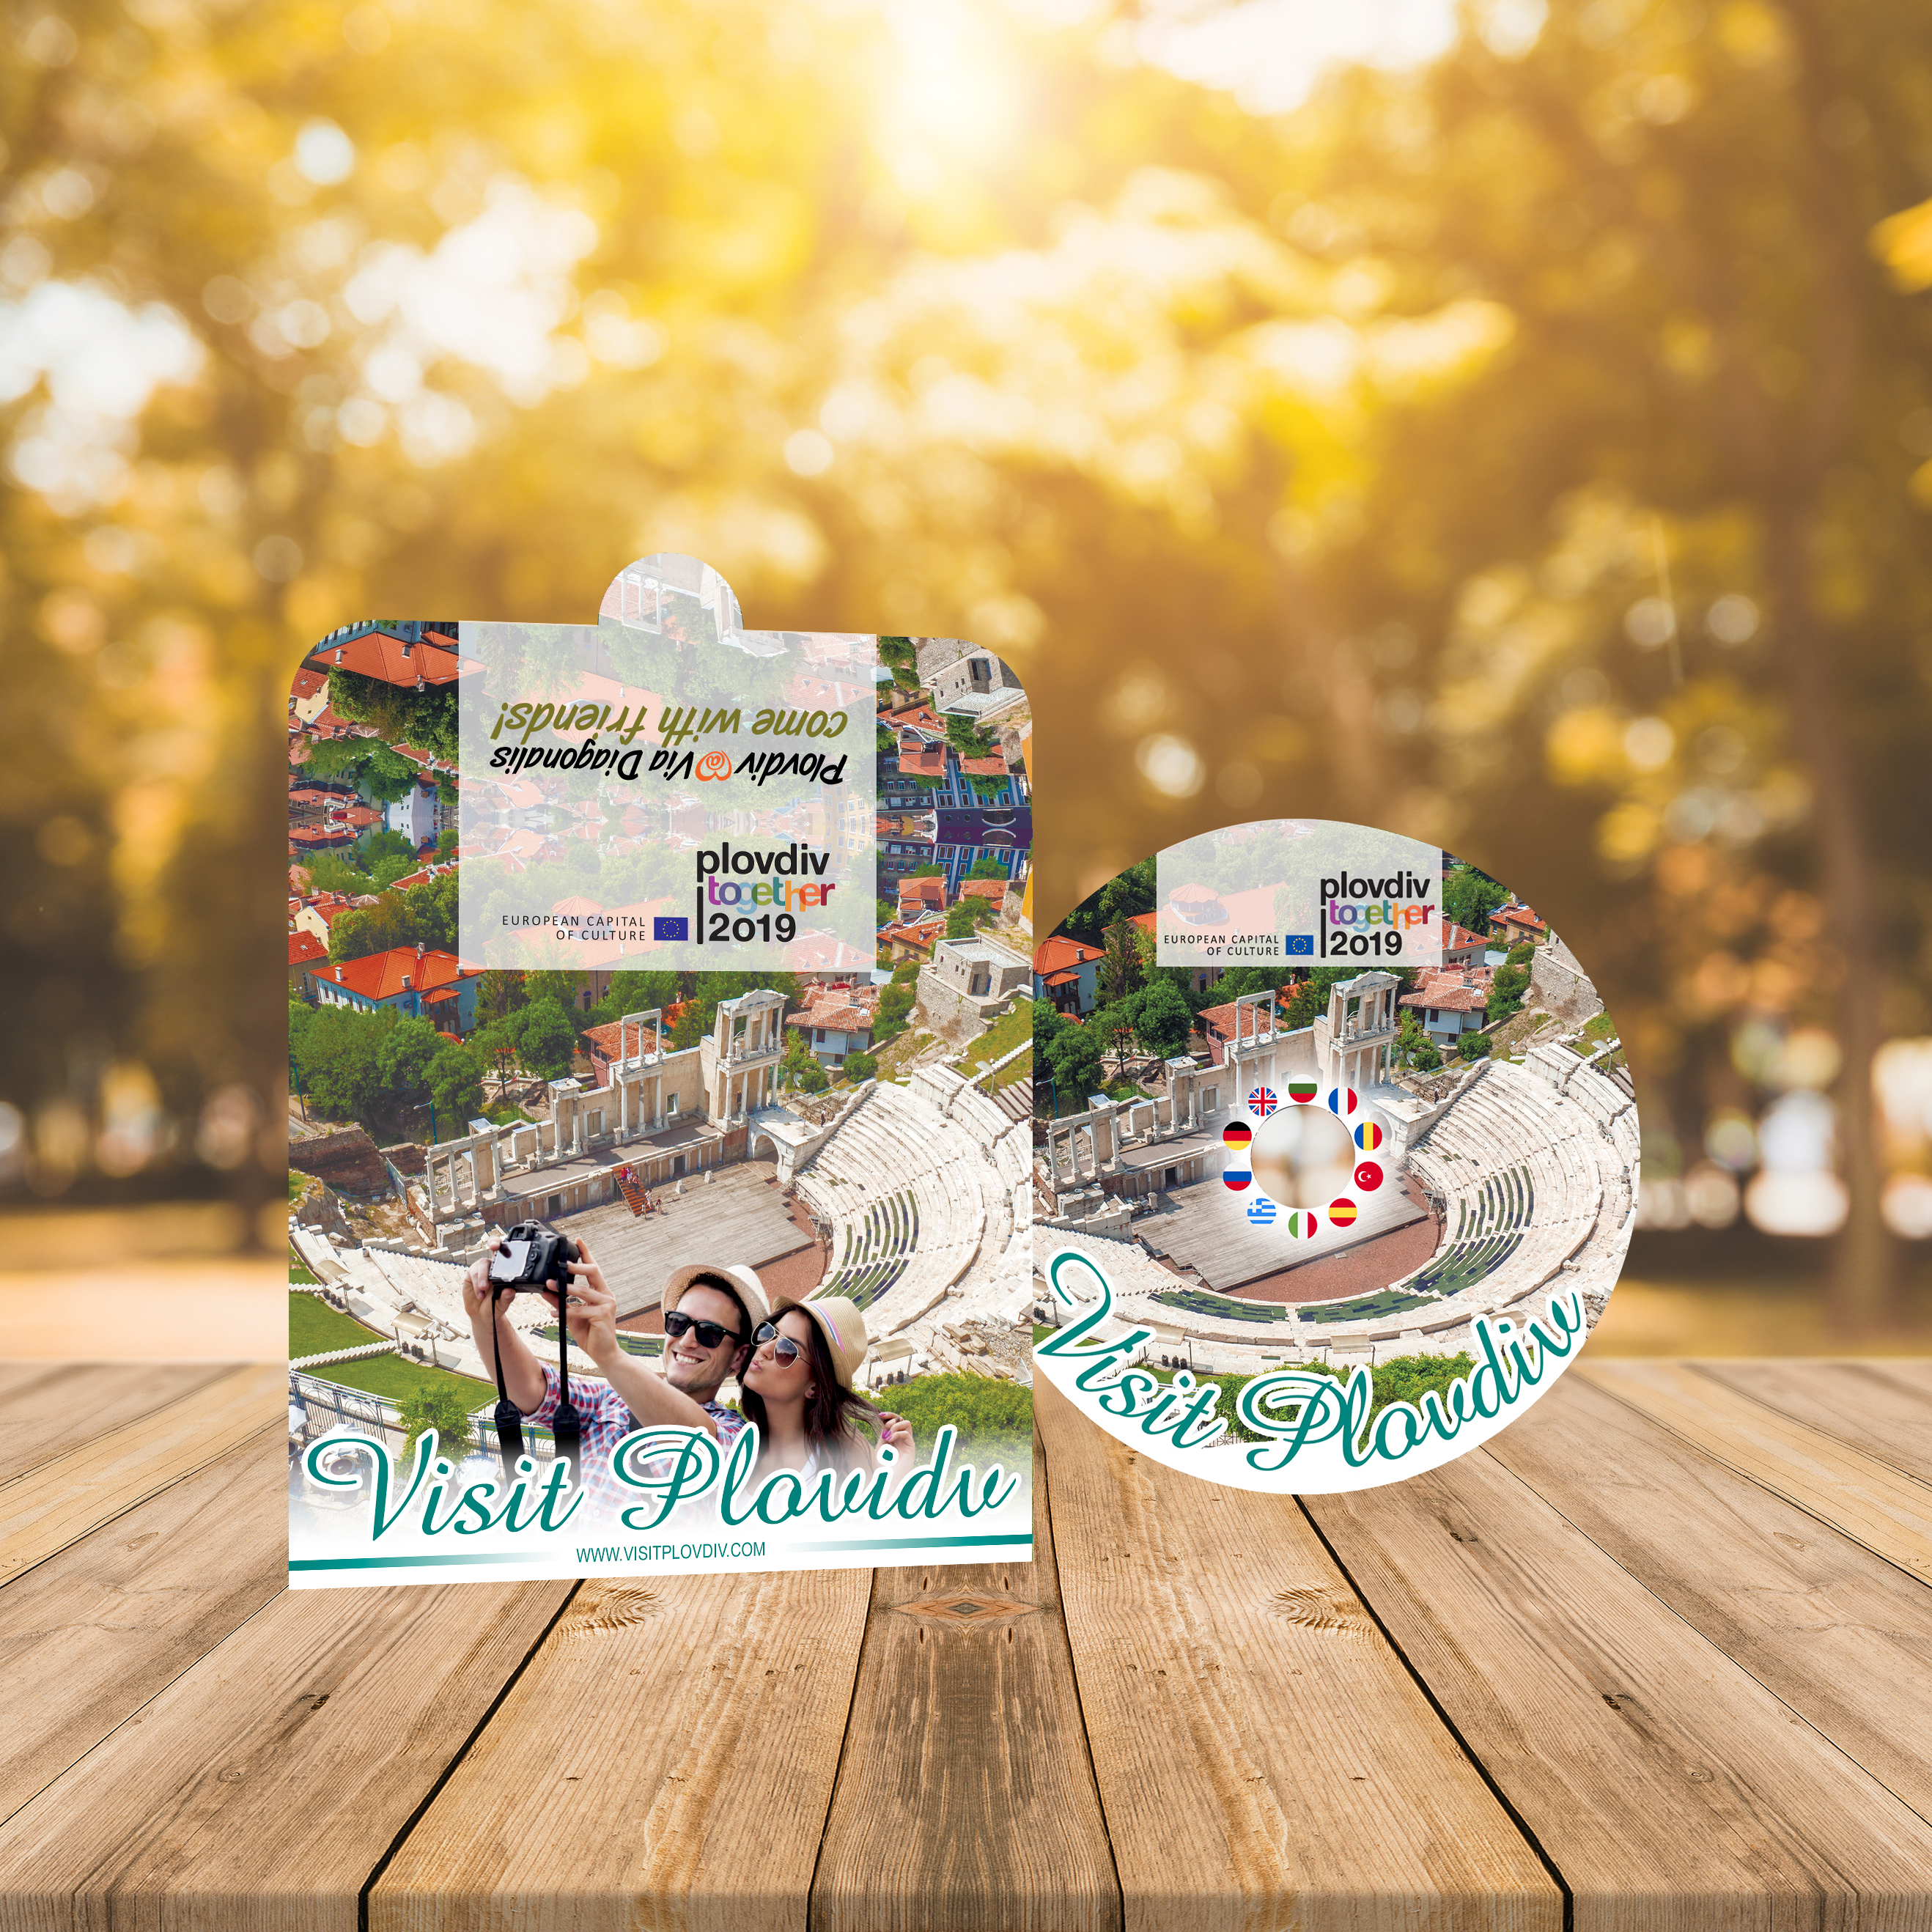 CD and cover design